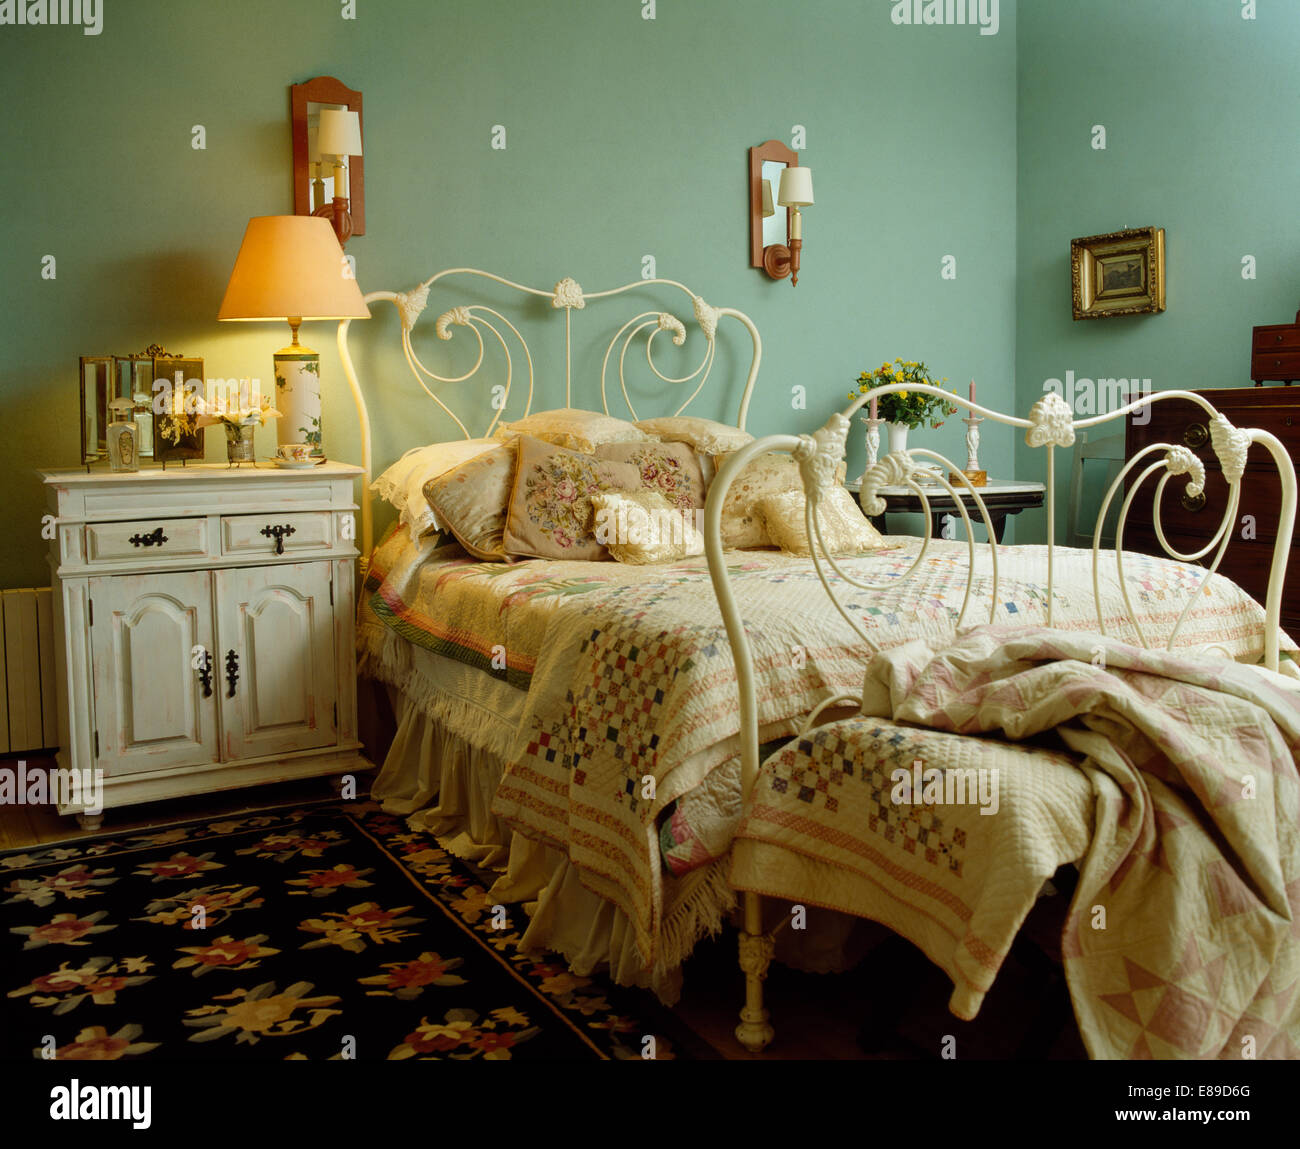 Lighted lamp beside white wrought-iron bed with patchwork quilt in pale green bedroom with floral rug - Stock Image